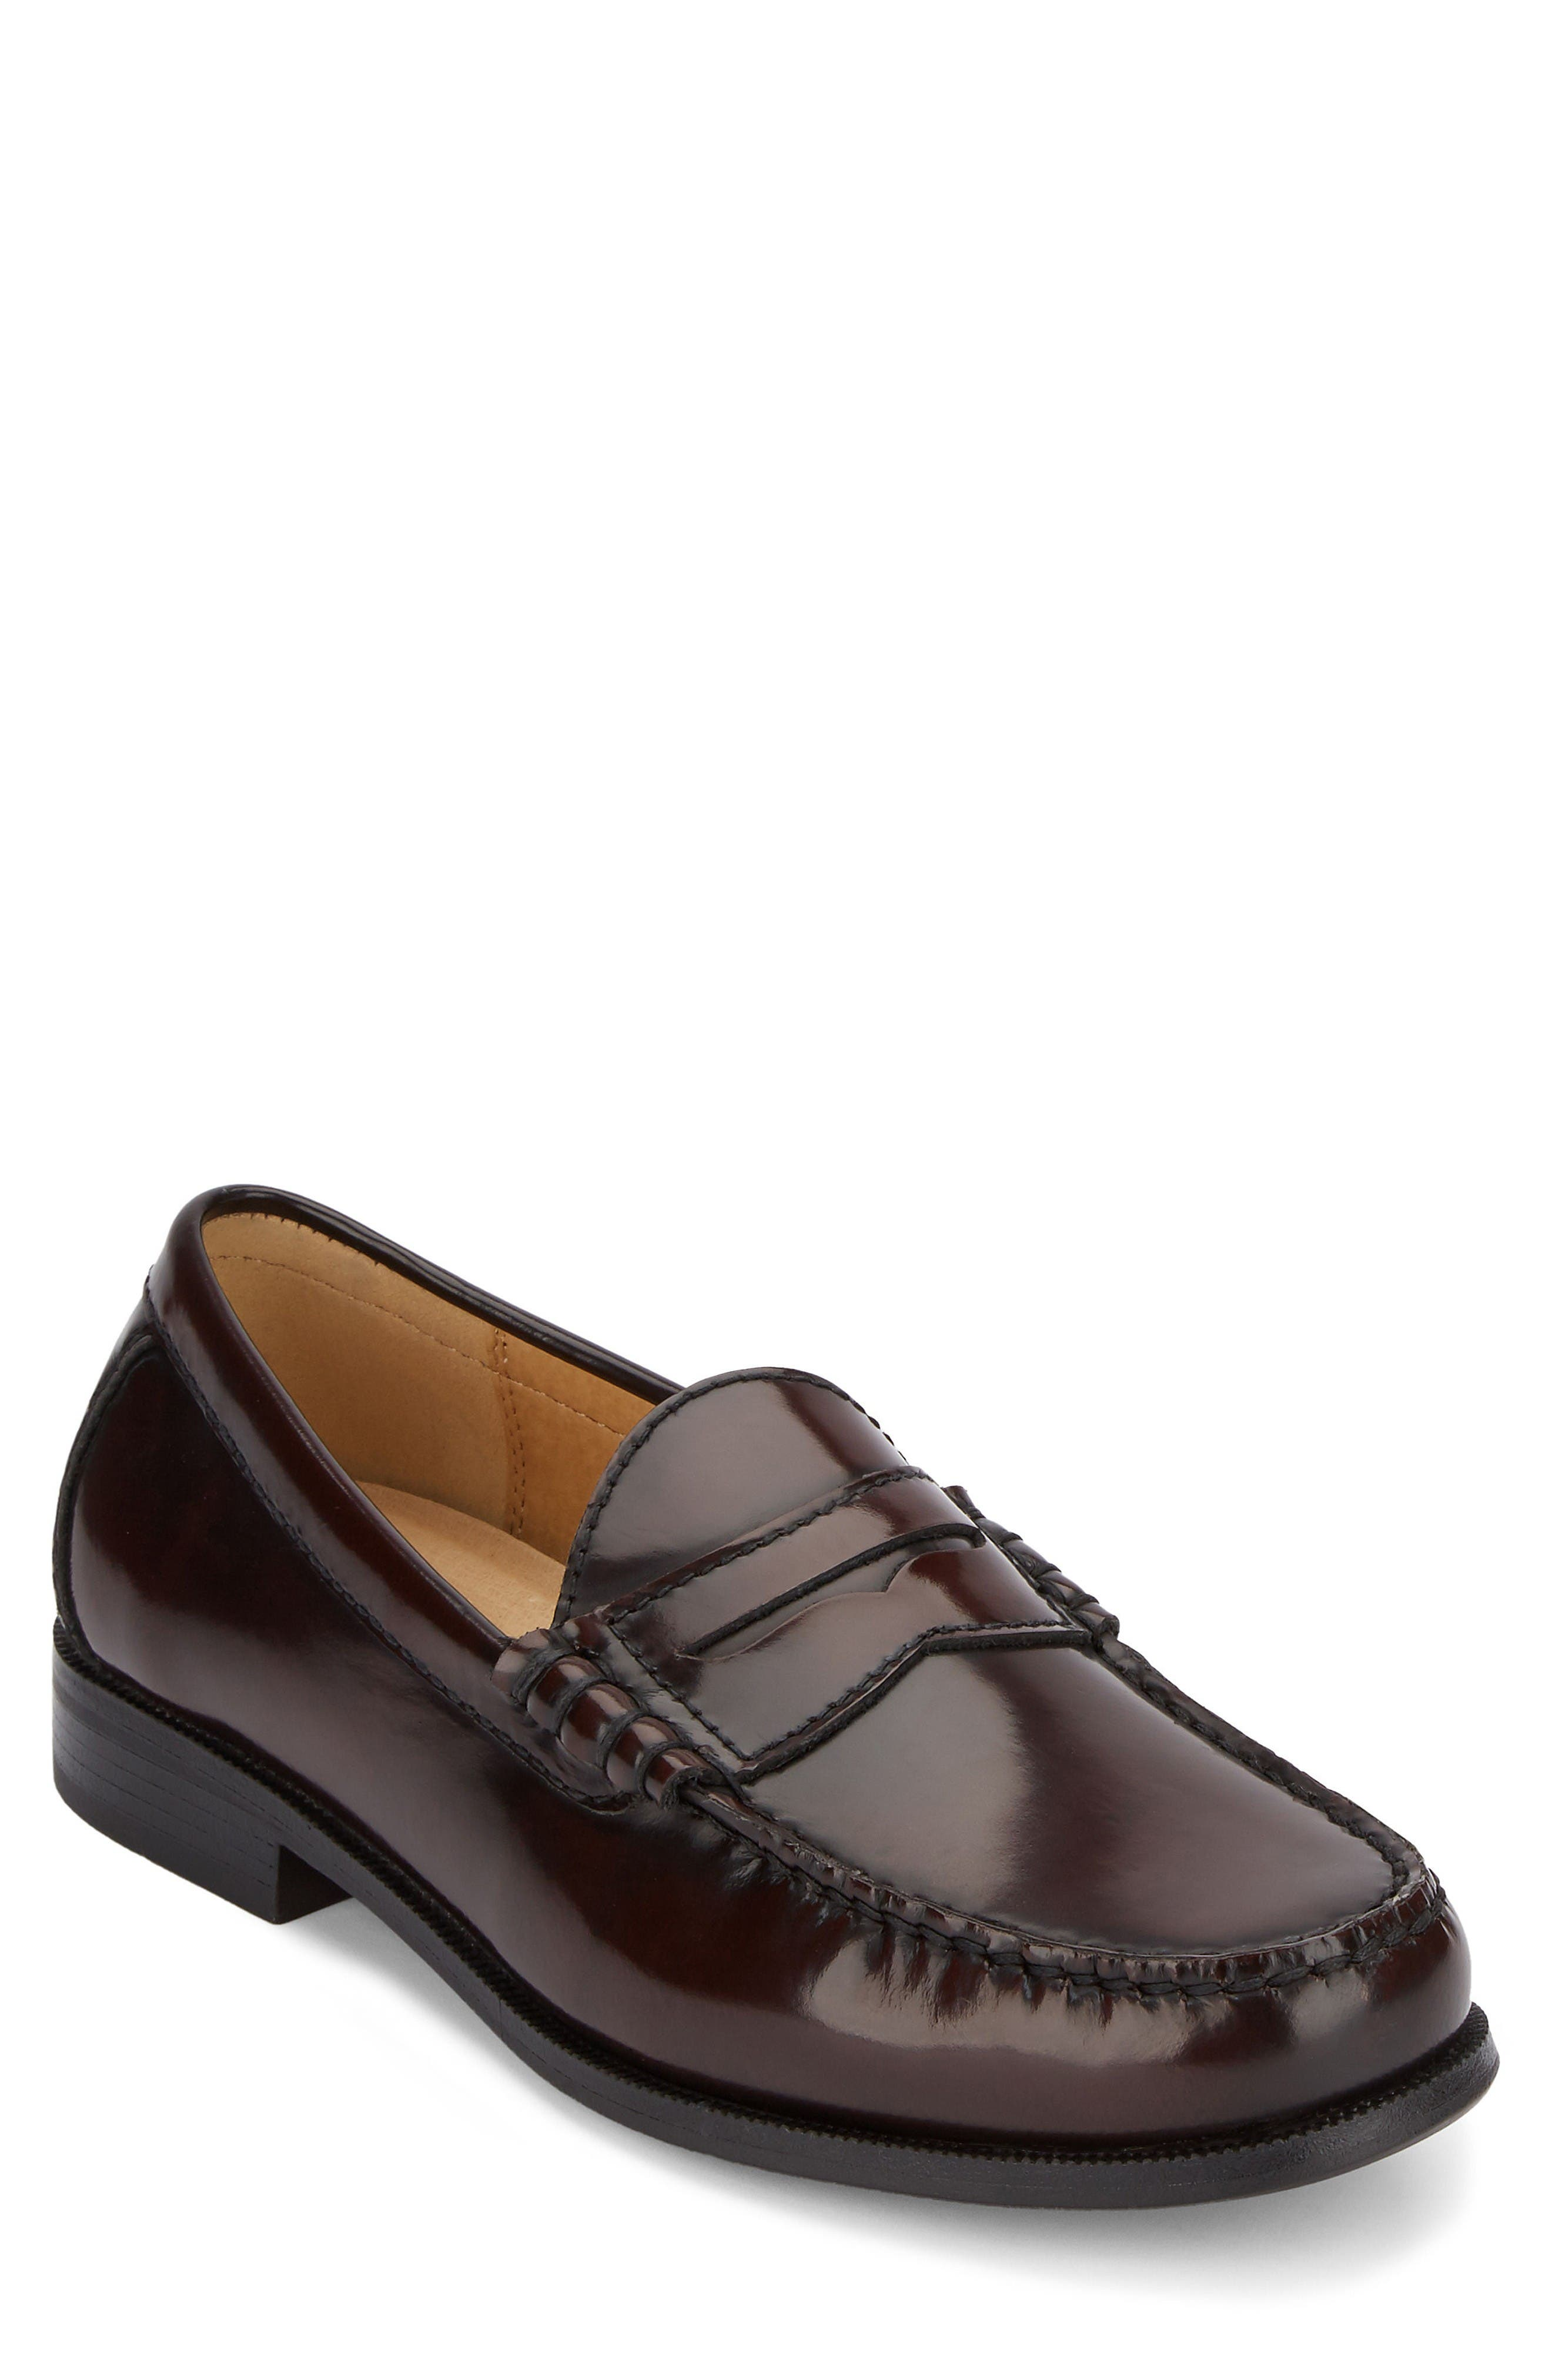 Main Image - G.H. Bass & Co. Carmichael Penny Loafer (Men)